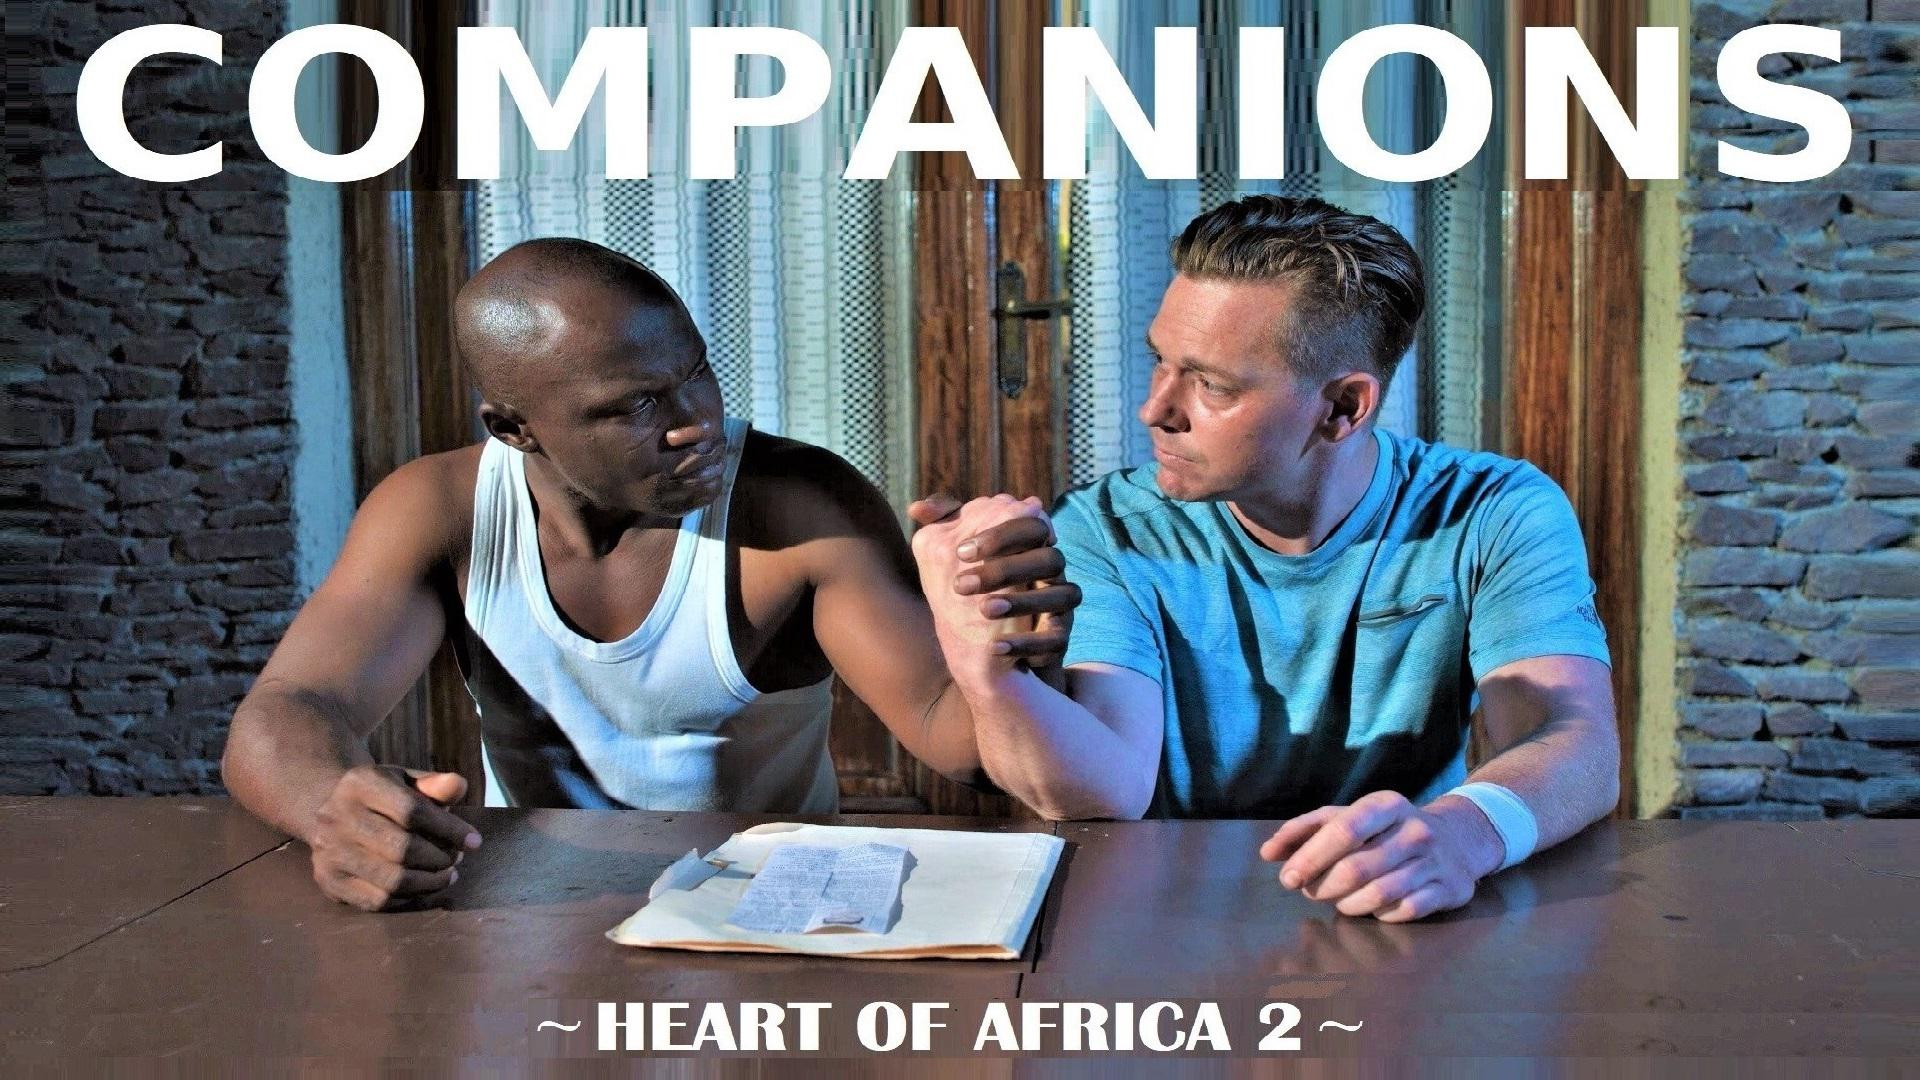 Heart of Africa 2: Companions